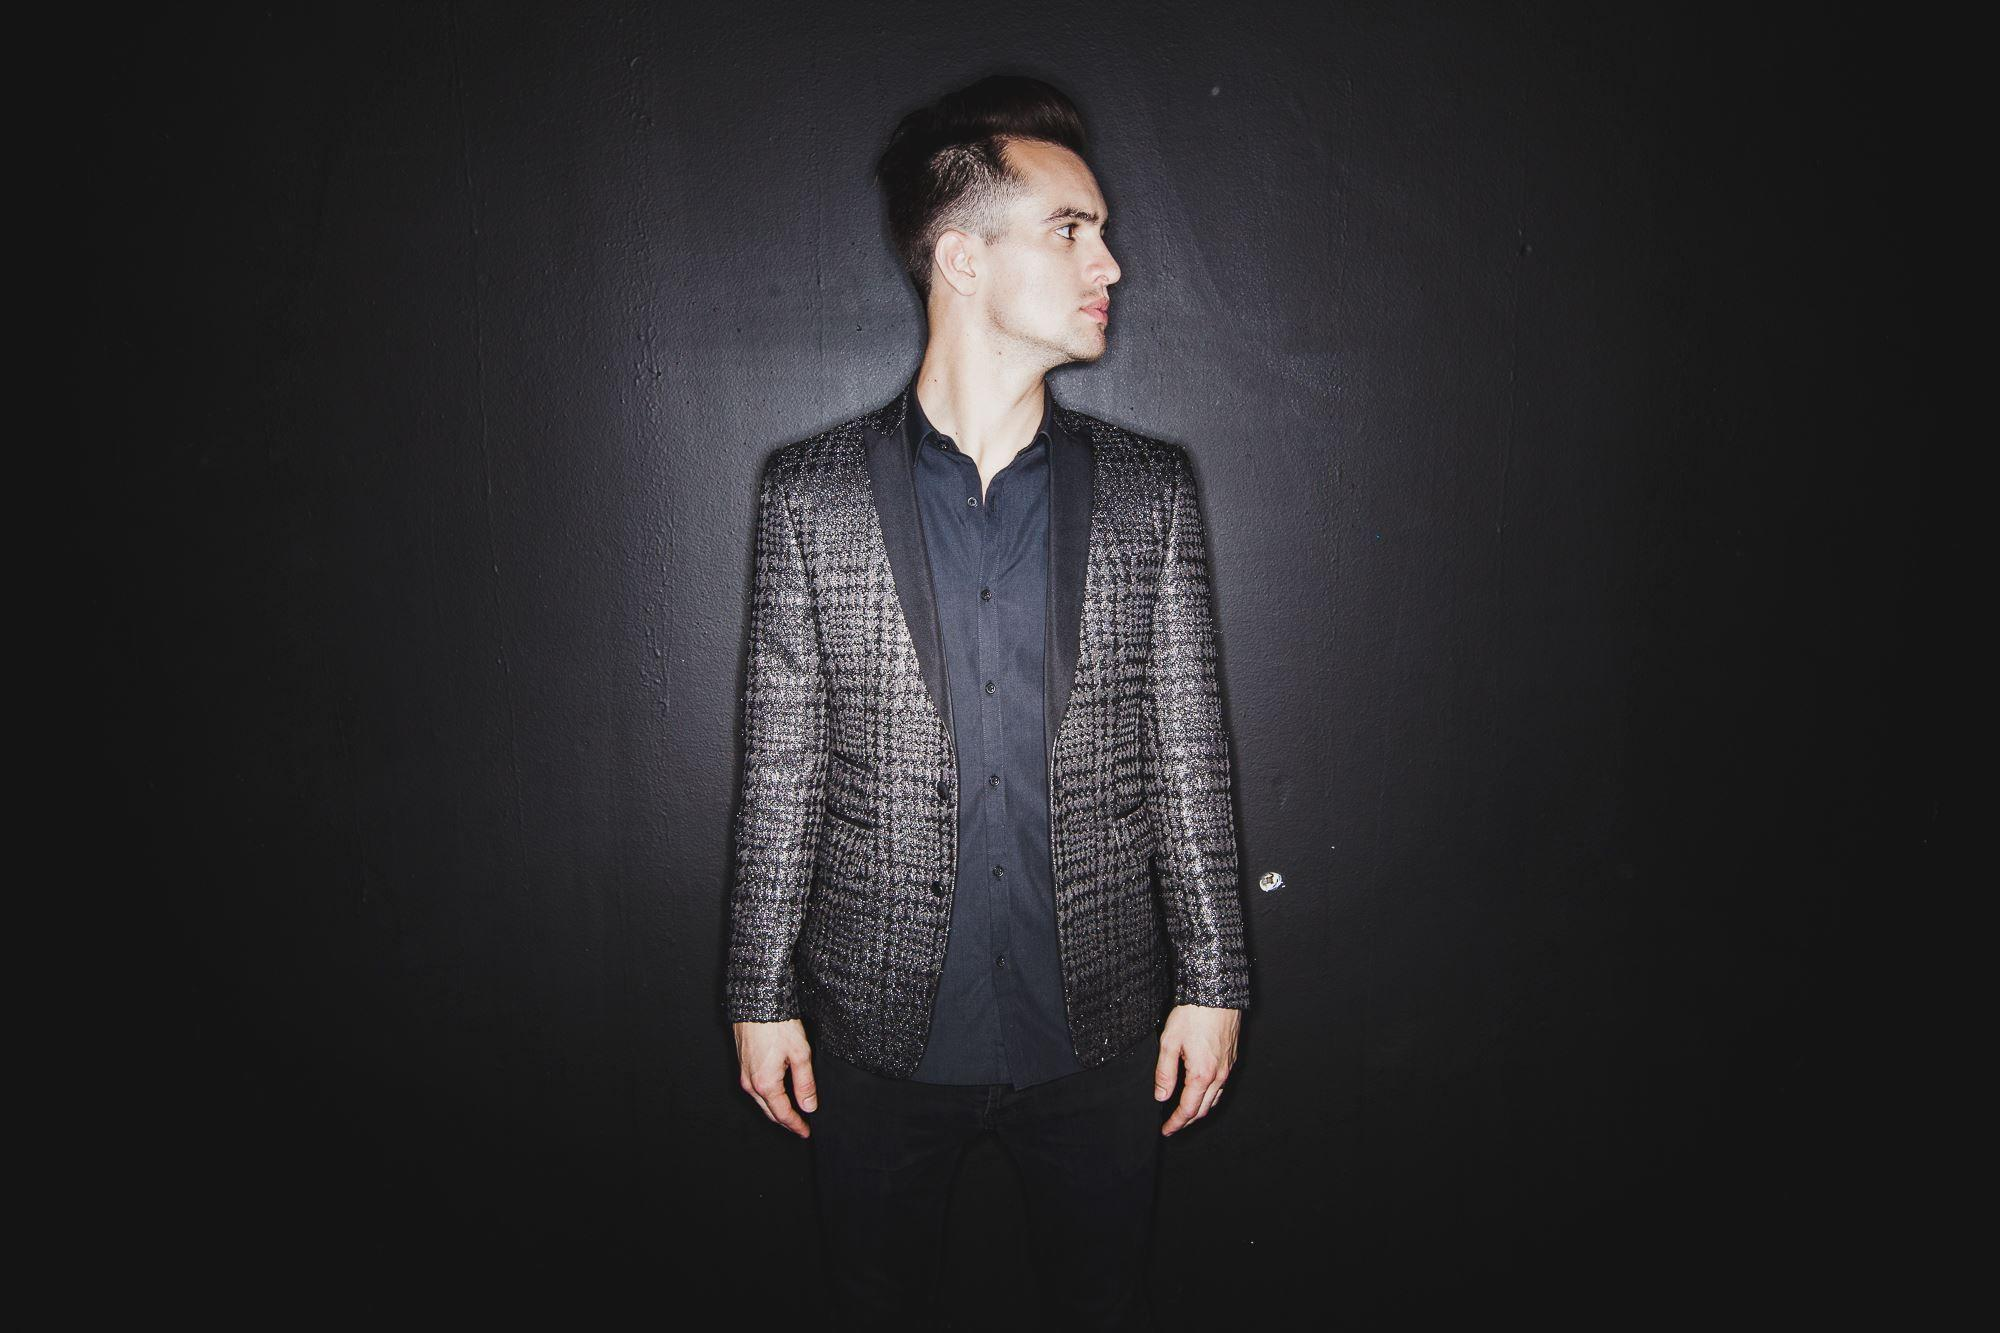 brendon urie wallpapers wallpaper cave